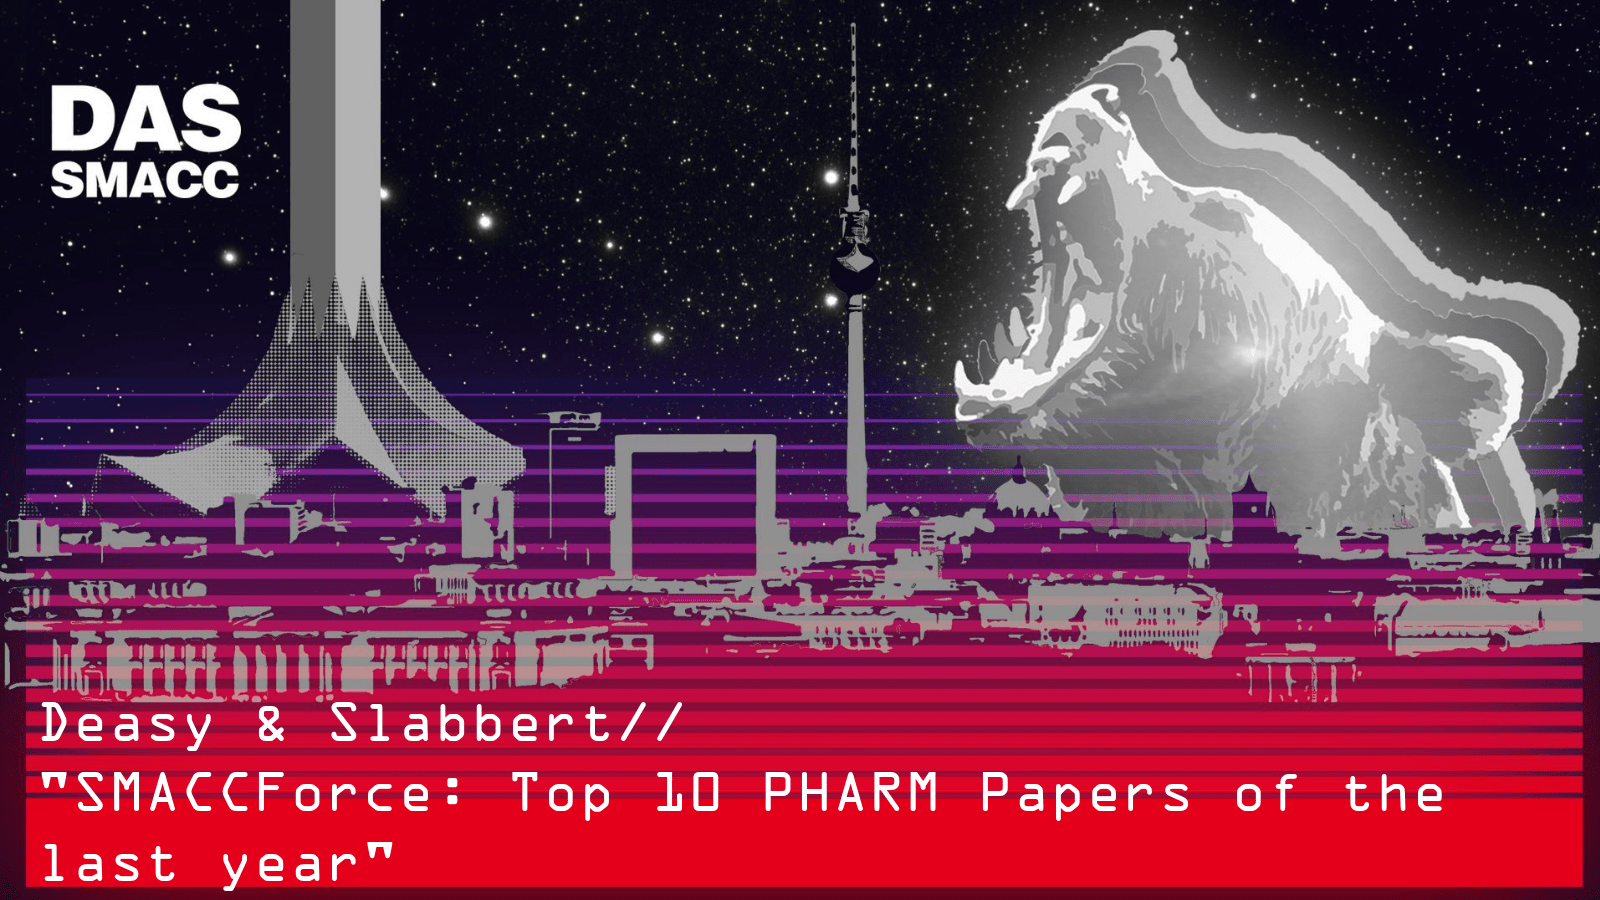 Top 10 PHARM Papers of the last year